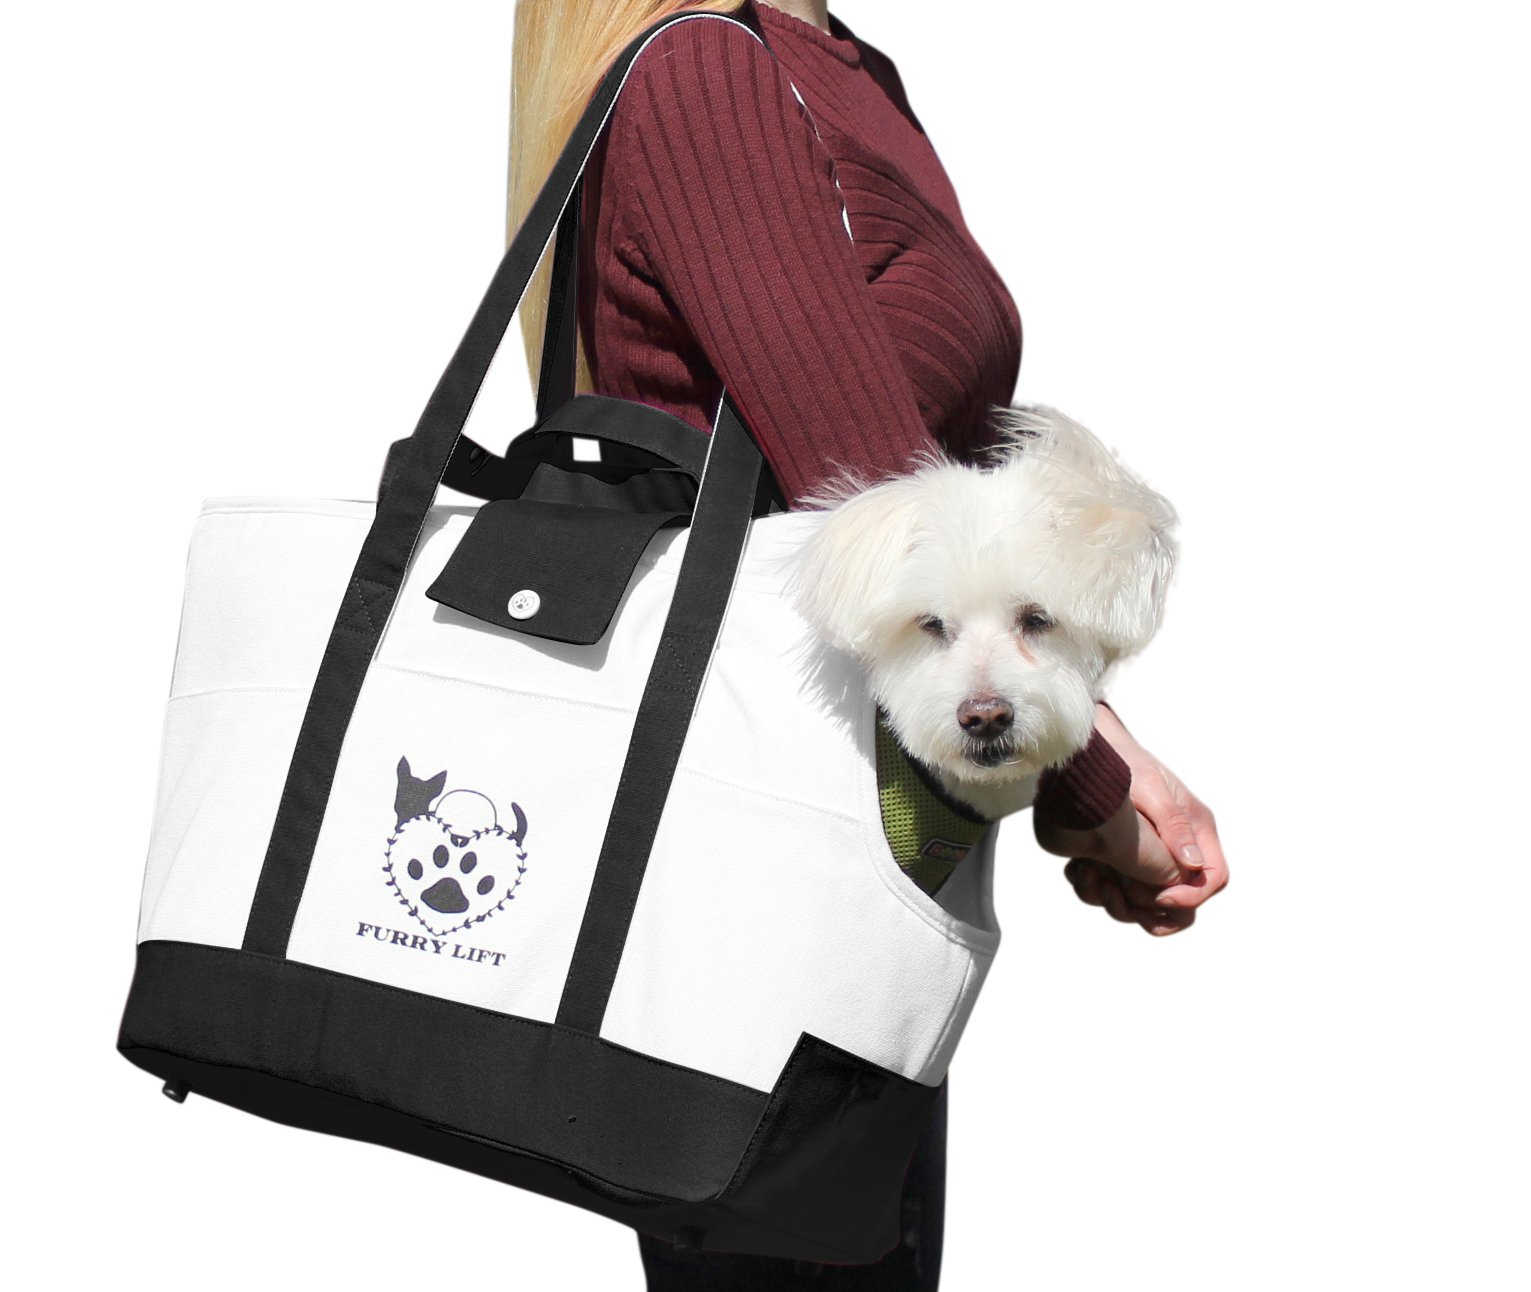 Furry Lift Pet Carrier Purse for Dogs or Cats, 8 Inner and Outer Pockets for Phone and Supplies, Safety Flaps, Up to 15lbs, Sherpa Insert, Perfect for Subway, Car, and Bus Travel (Black and White)